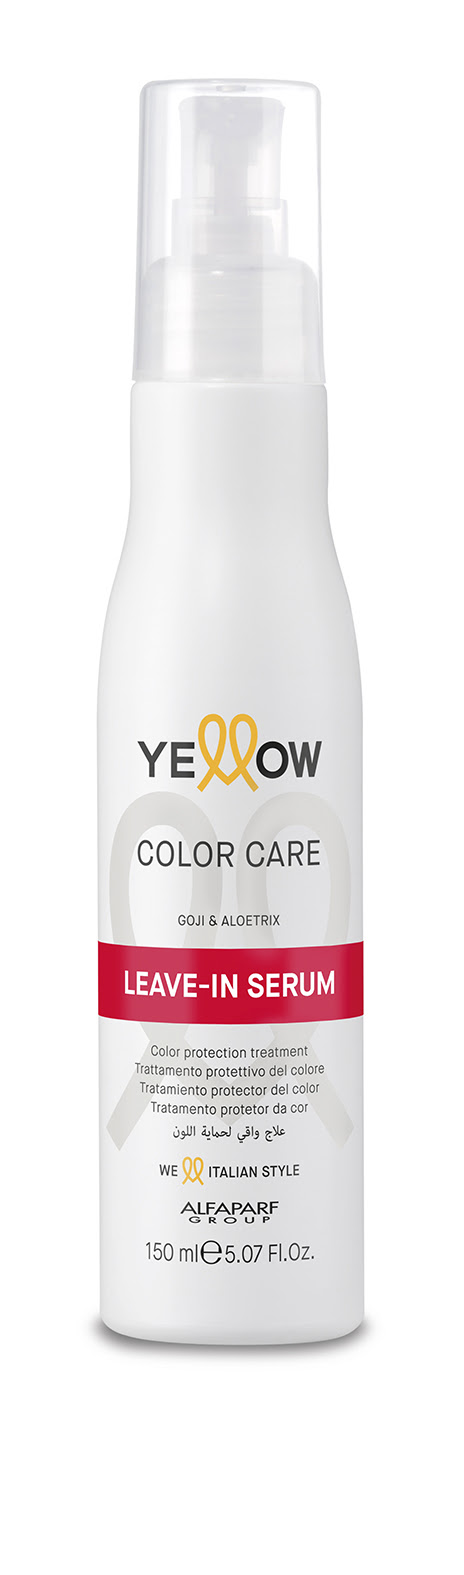 Leave in Color Care Yellow